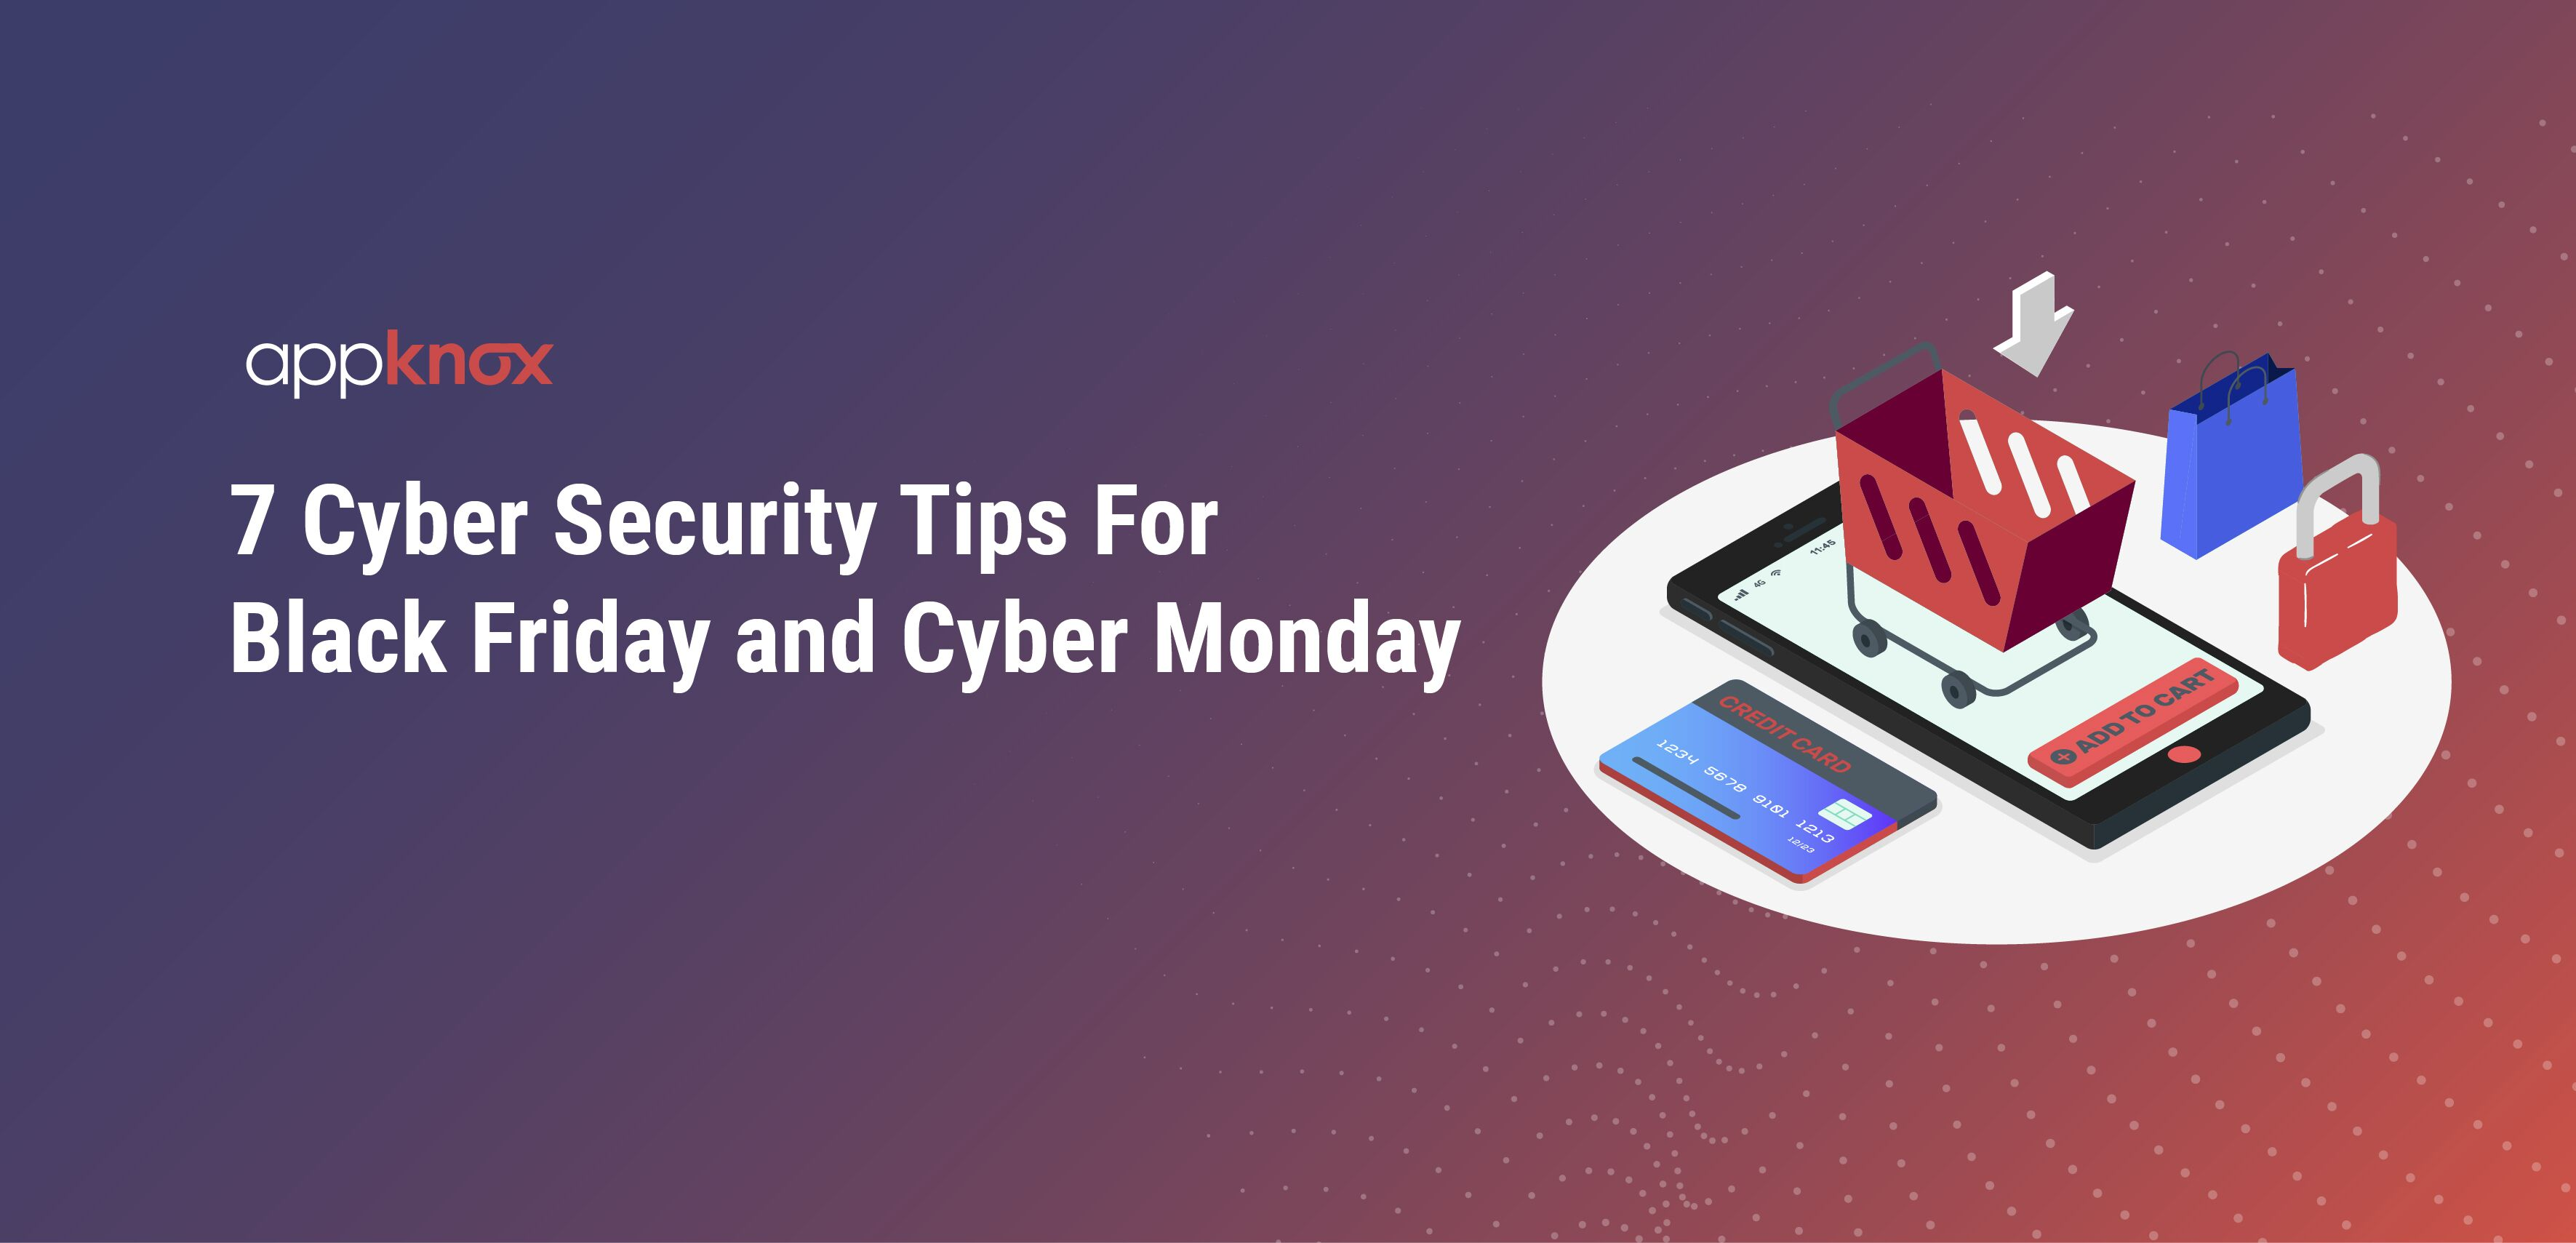 7 Cyber Security Tips For Black Friday and Cyber Monday